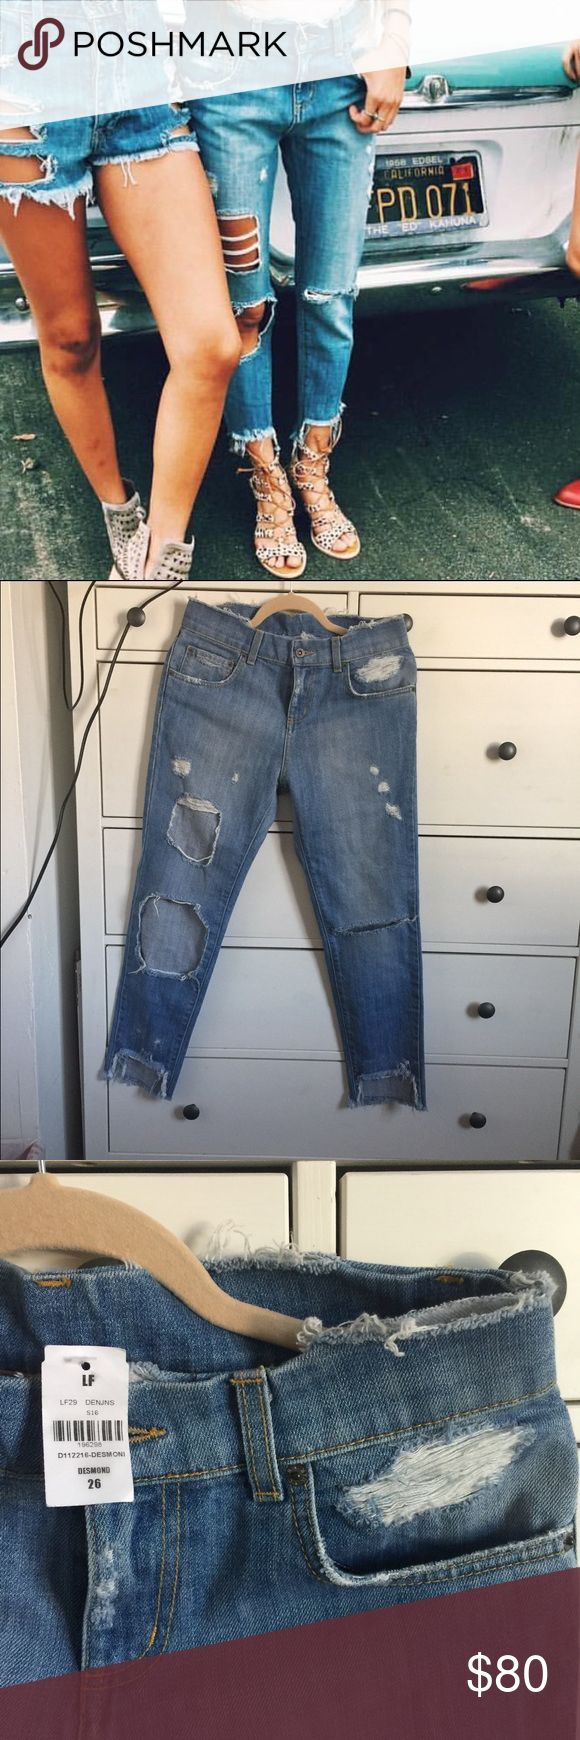 LF Carmar Desmond Denim Jeans Sz 26 New with tags. Denim carmar jeans. Desmond style with intentional distressing all around. Size 26 but i think they run small. 20% cheaper via Mercarí or Paypál. No trades. LF Jeans